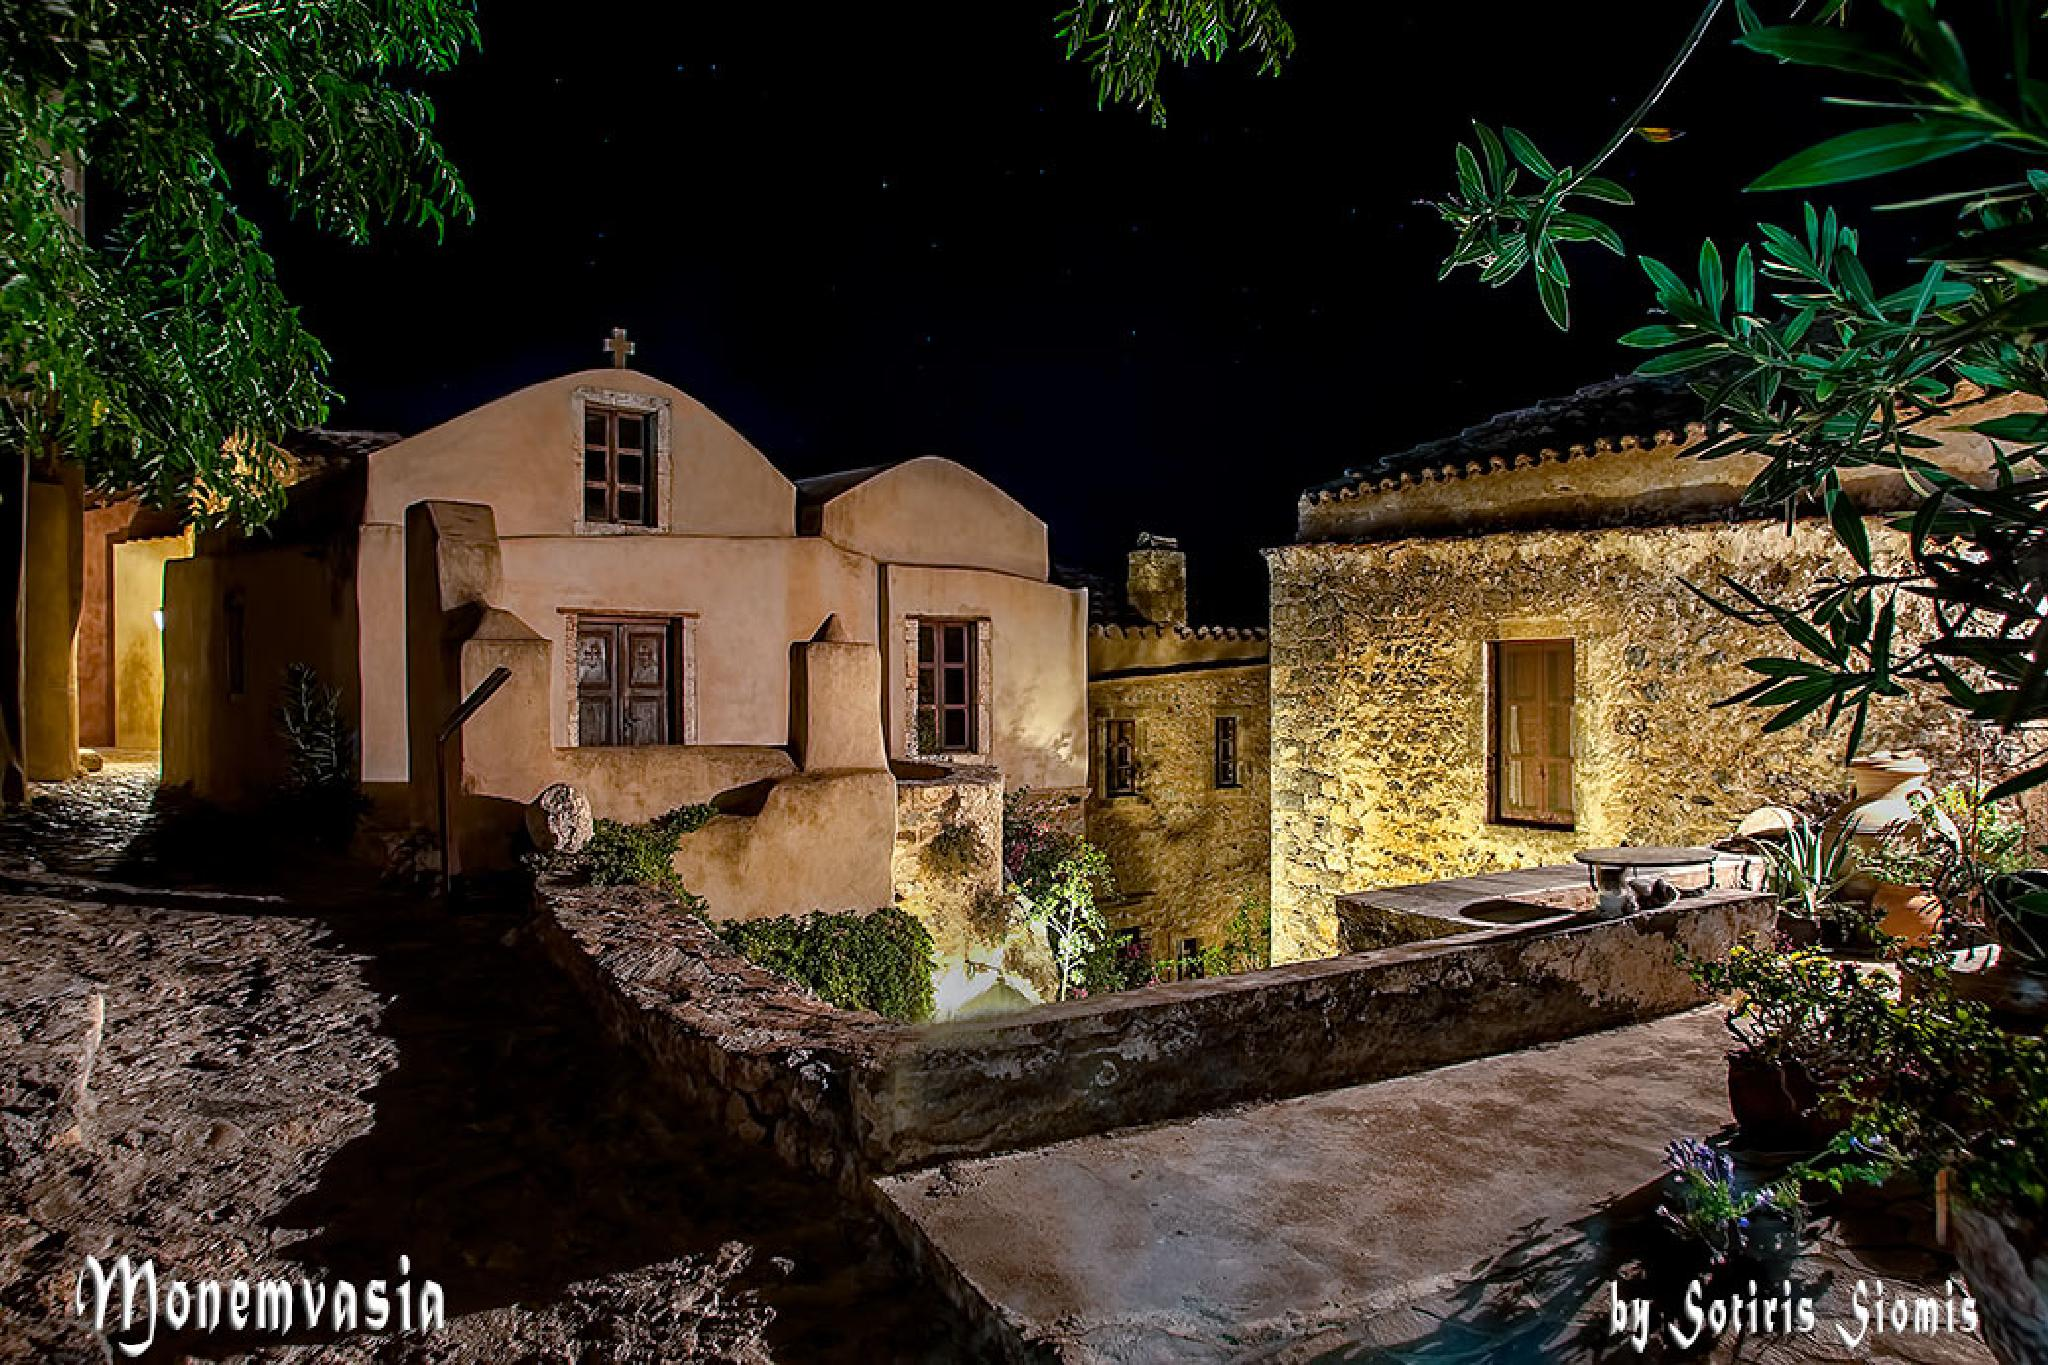 Monemvasia by Sotiris Siomis